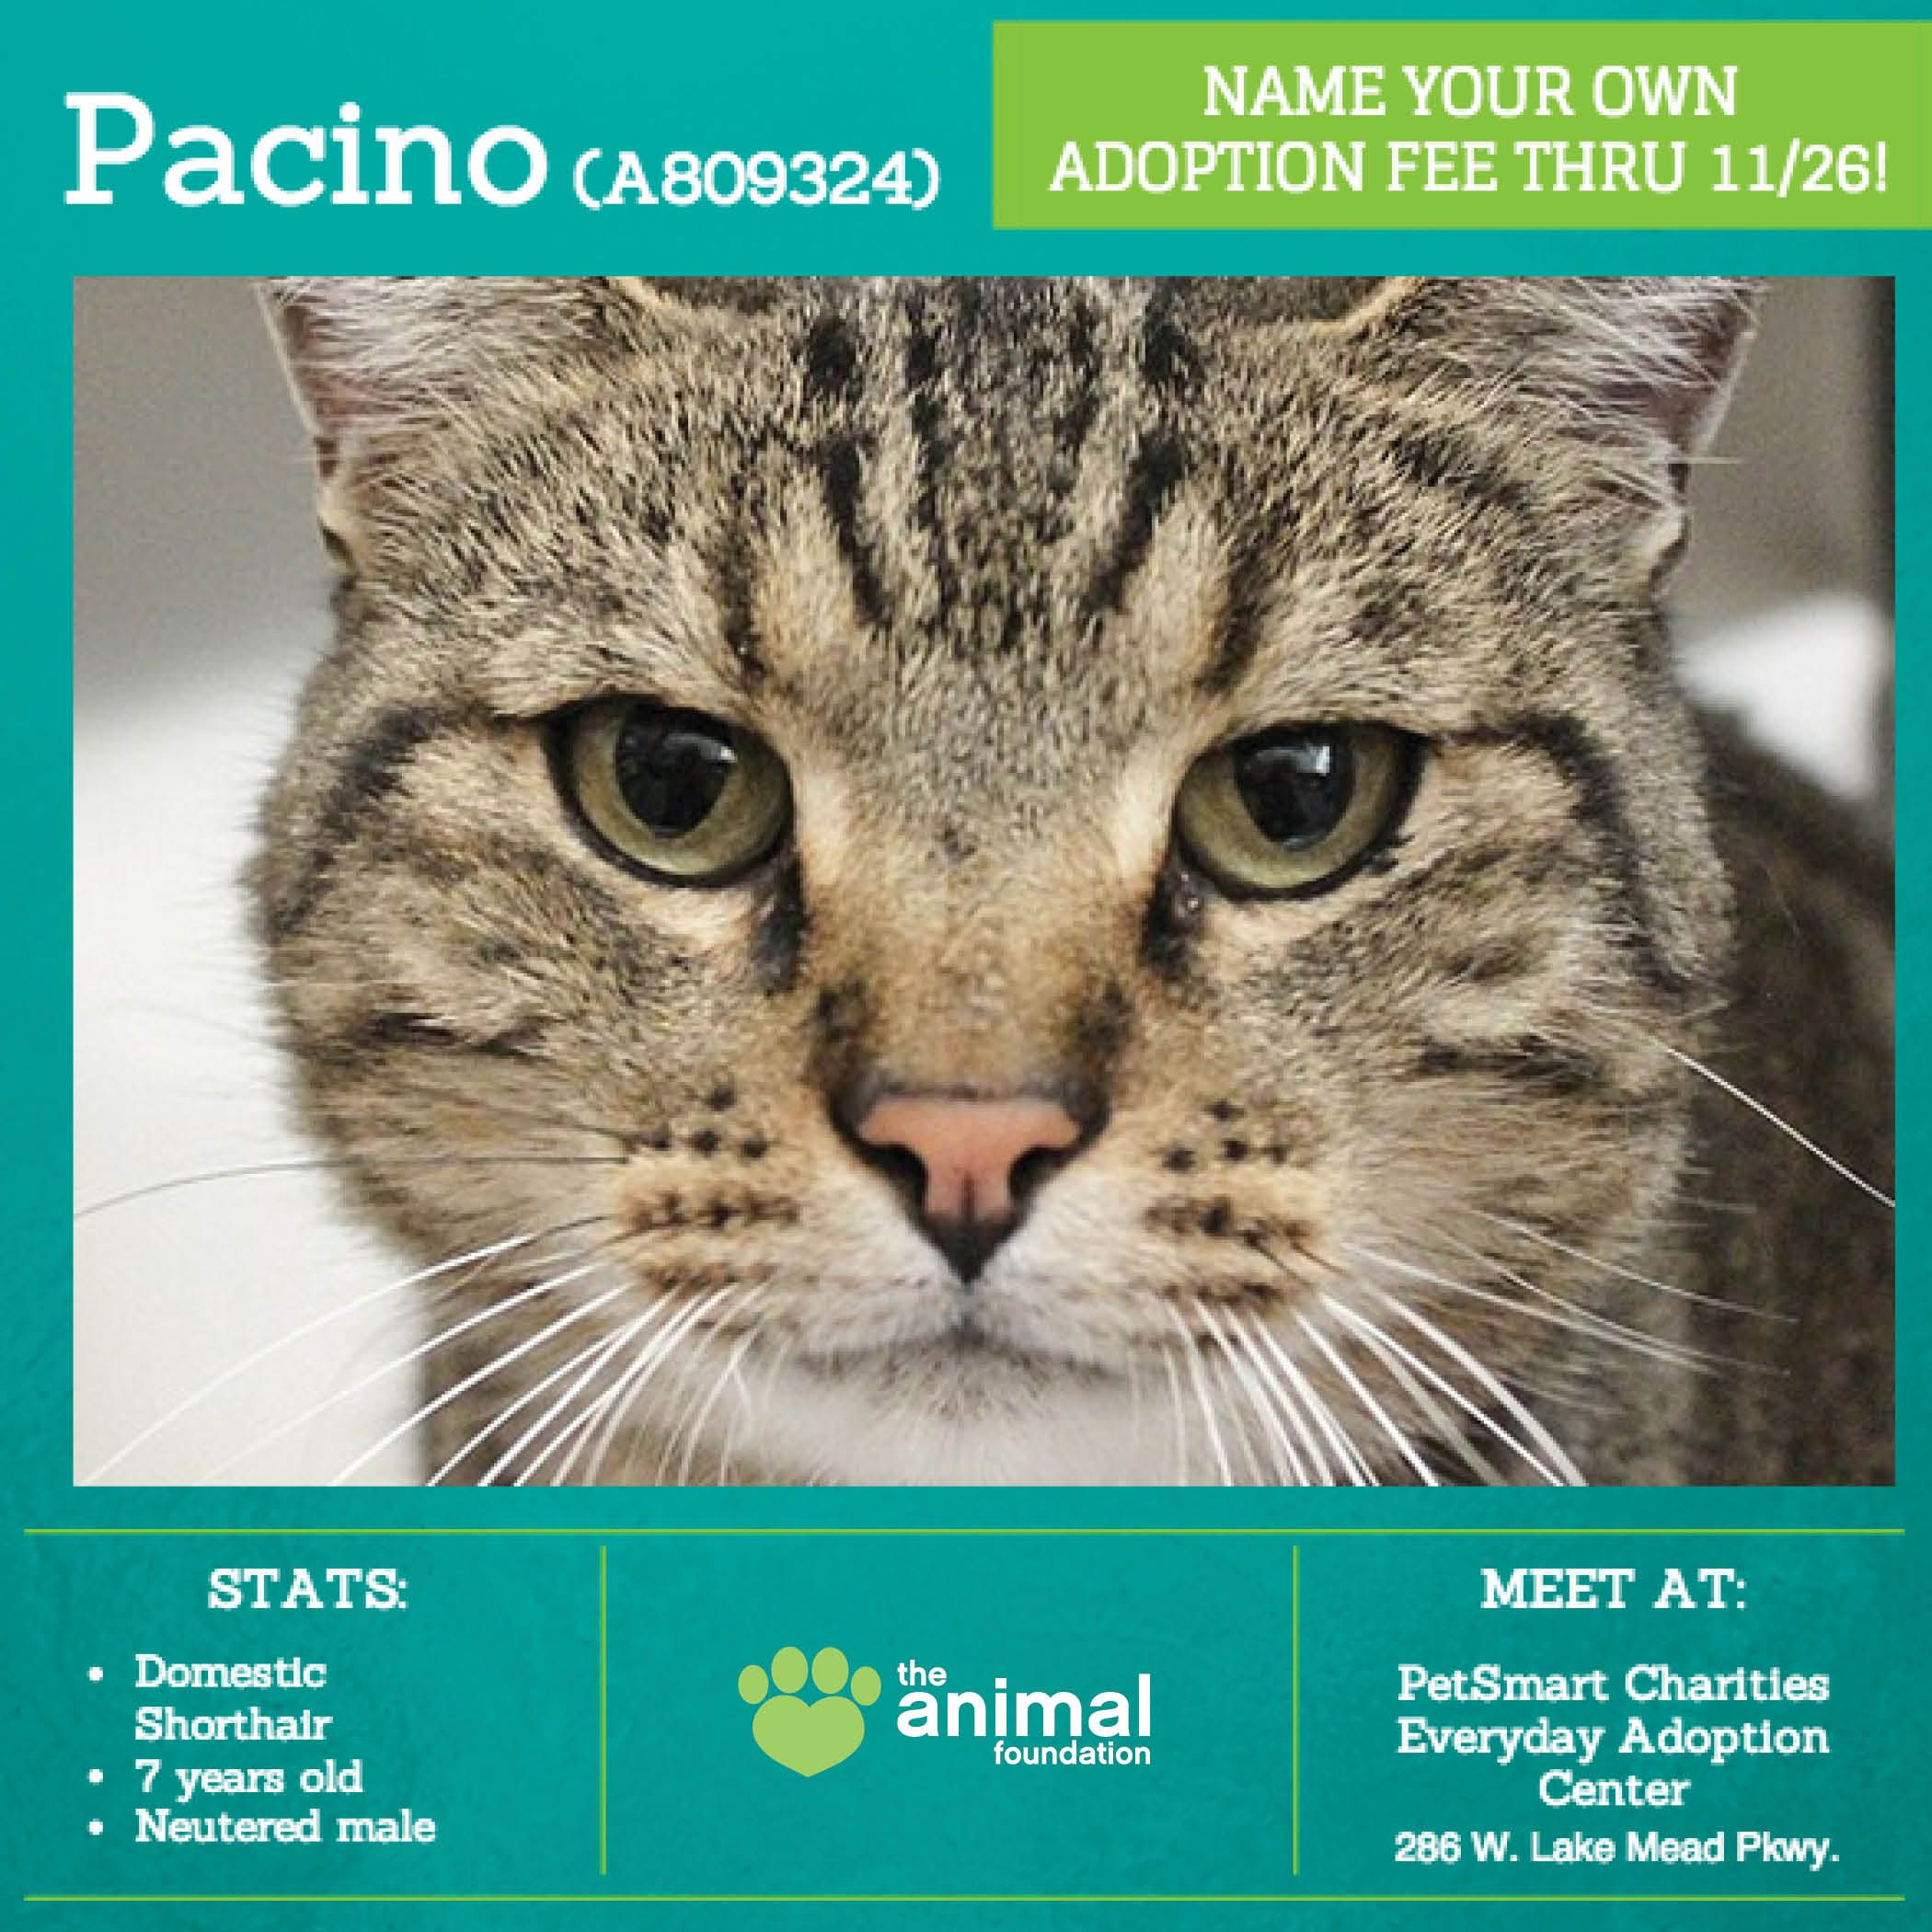 Say Hello To Our Little Friend Pacino A809324 This Sweet Handsome Fella Loves Pets And Cuddles And His Ideal Partner Is Just As Cat Adoption Cats Dog Cat